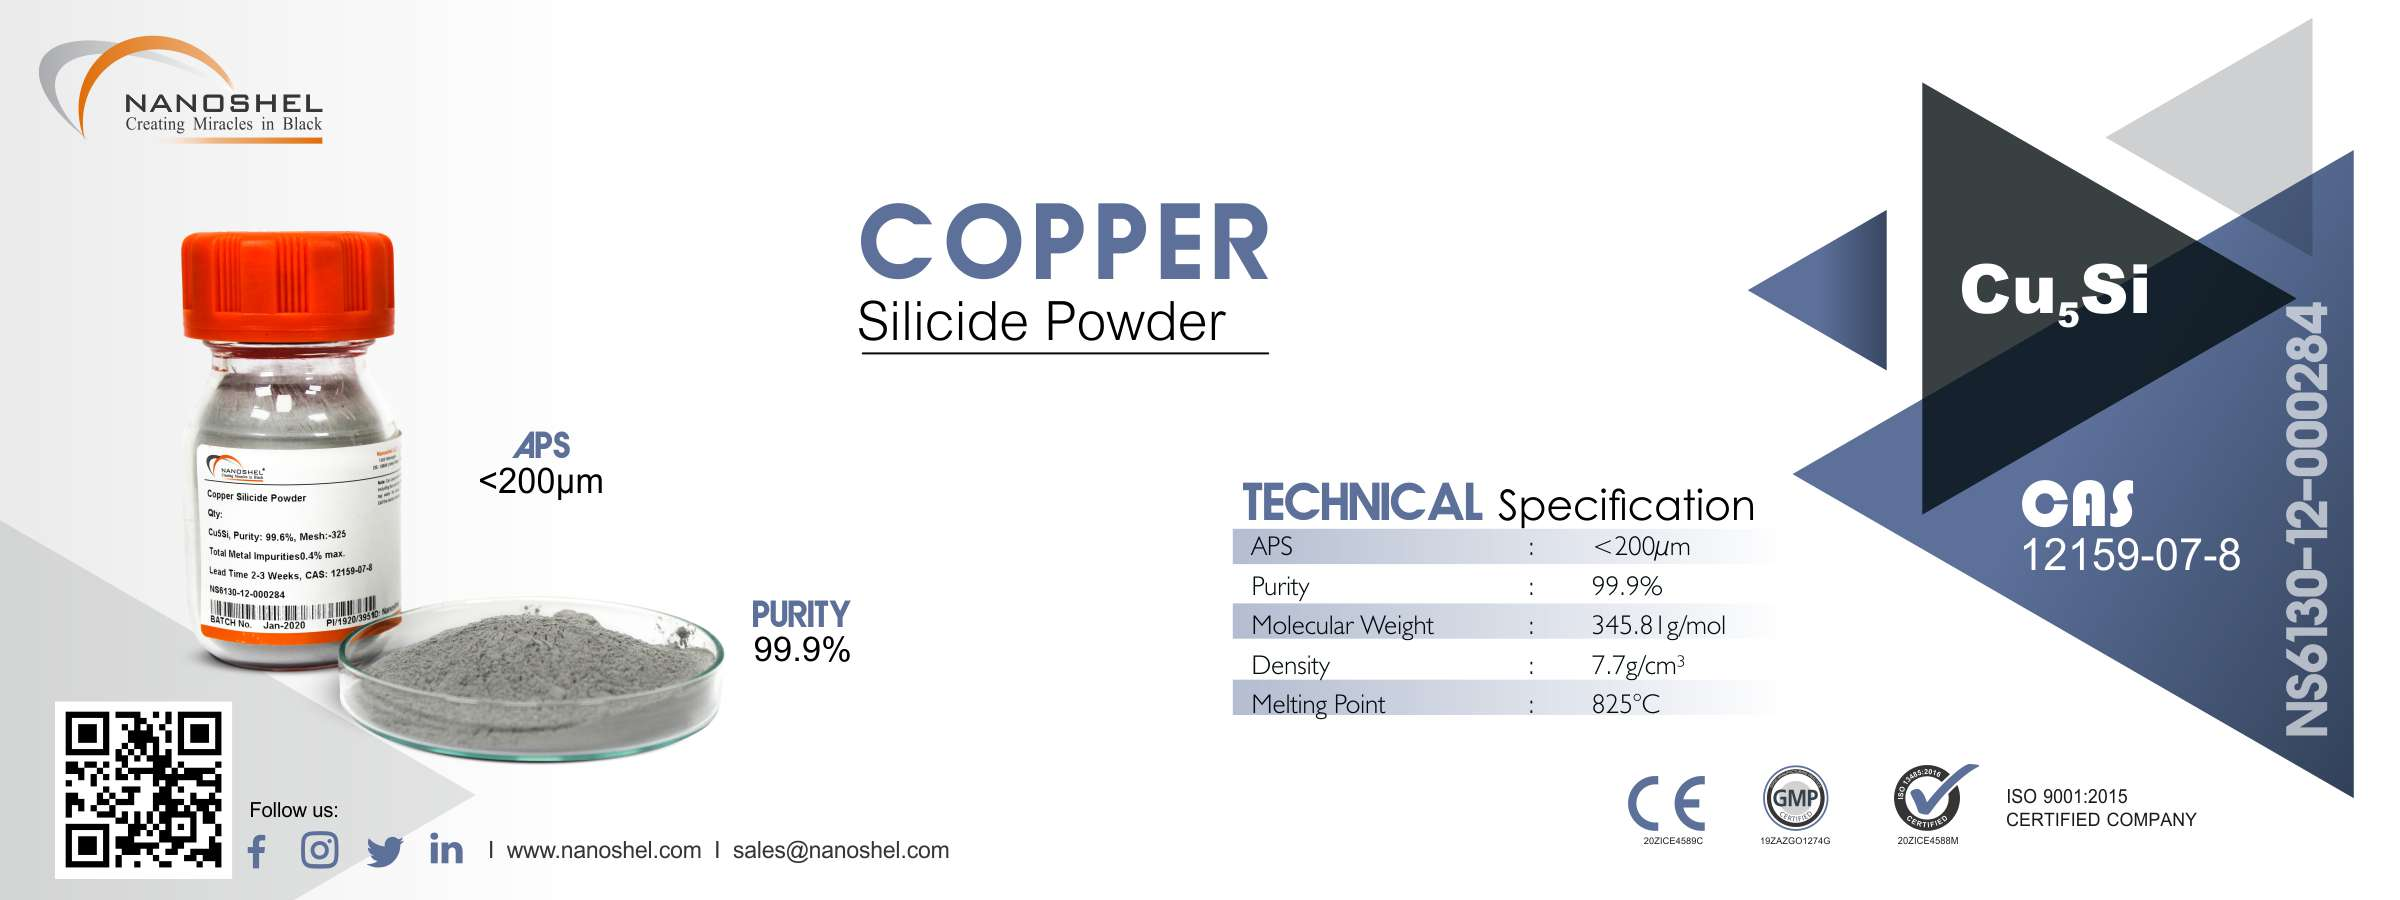 Copper Silicide Powder